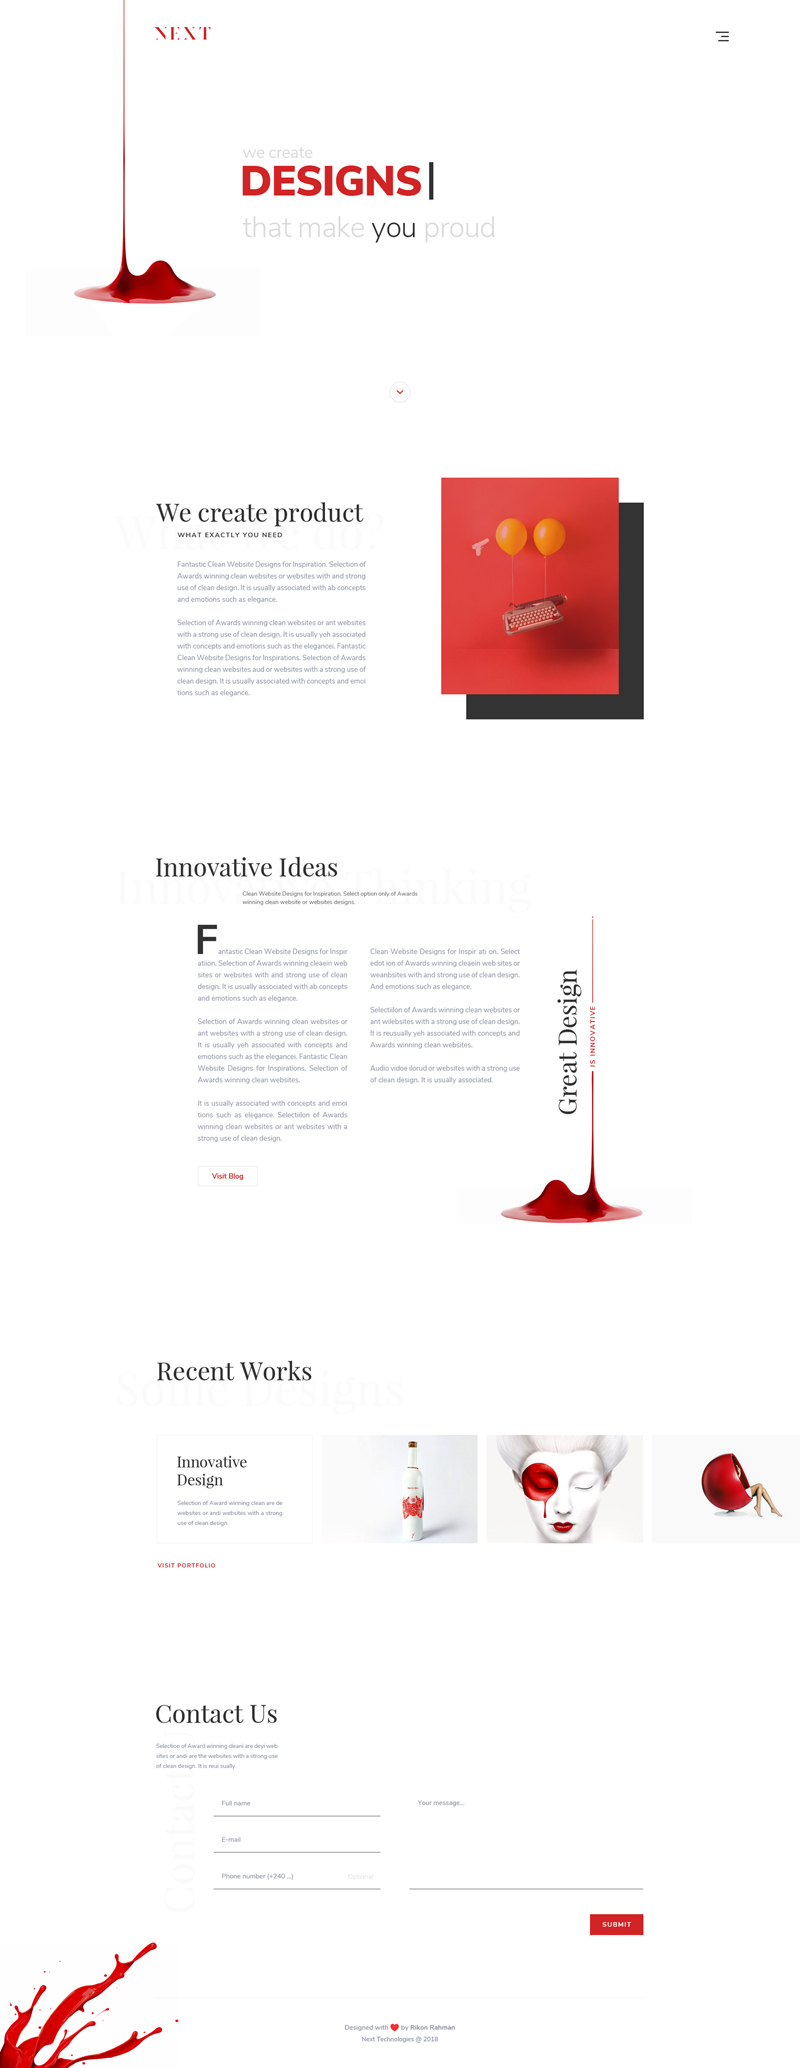 Next - Agency Landing Page Design Template - Freebie Supply